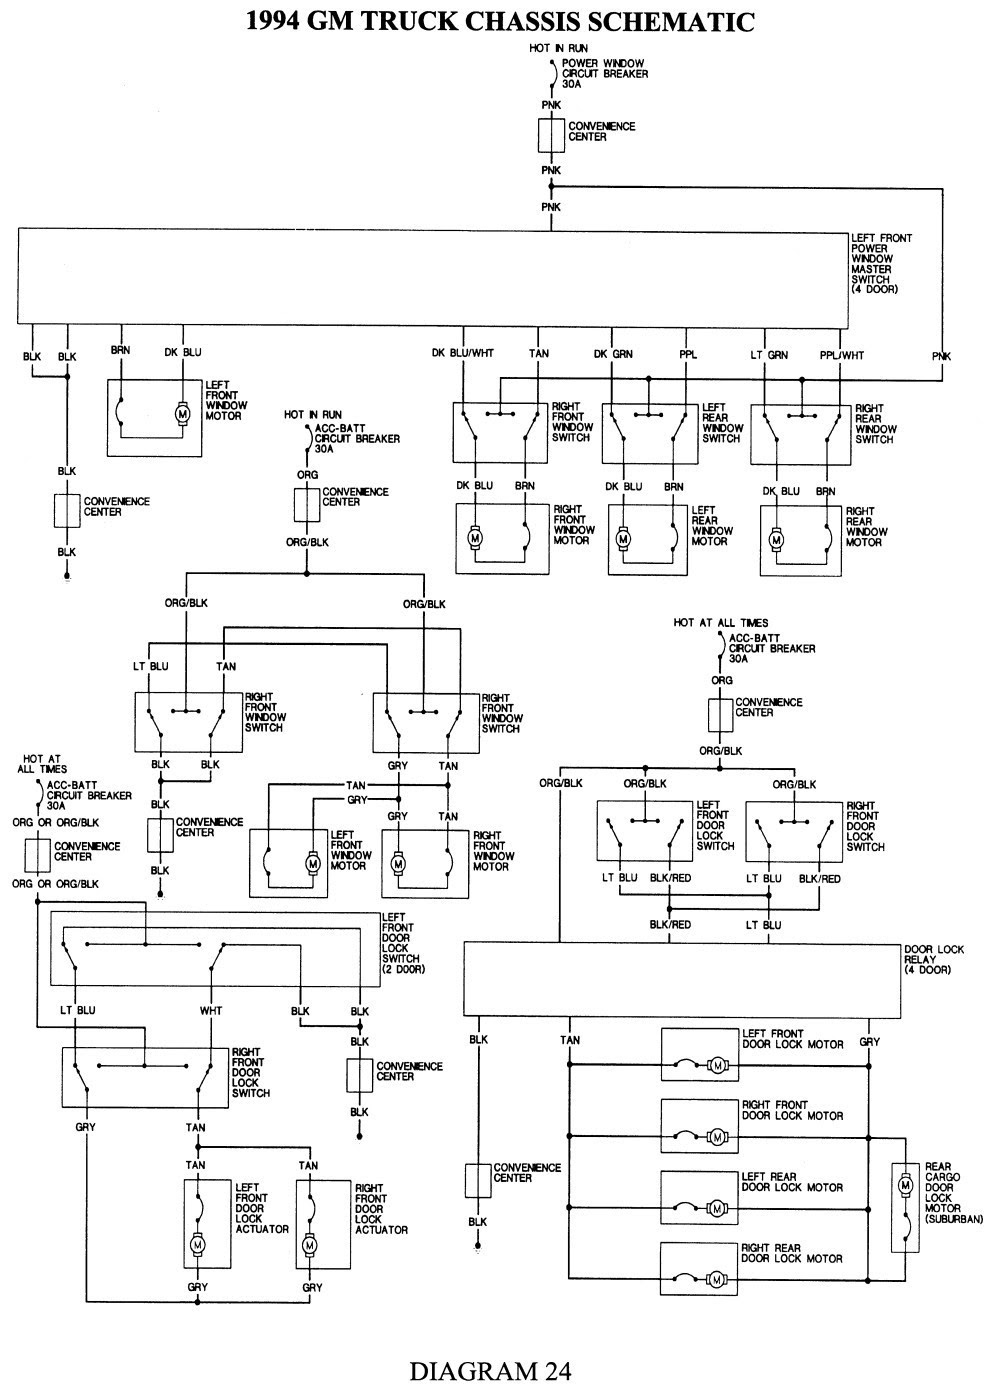 2001 Chevy Tahoe Wiring Diagram from lh5.googleusercontent.com